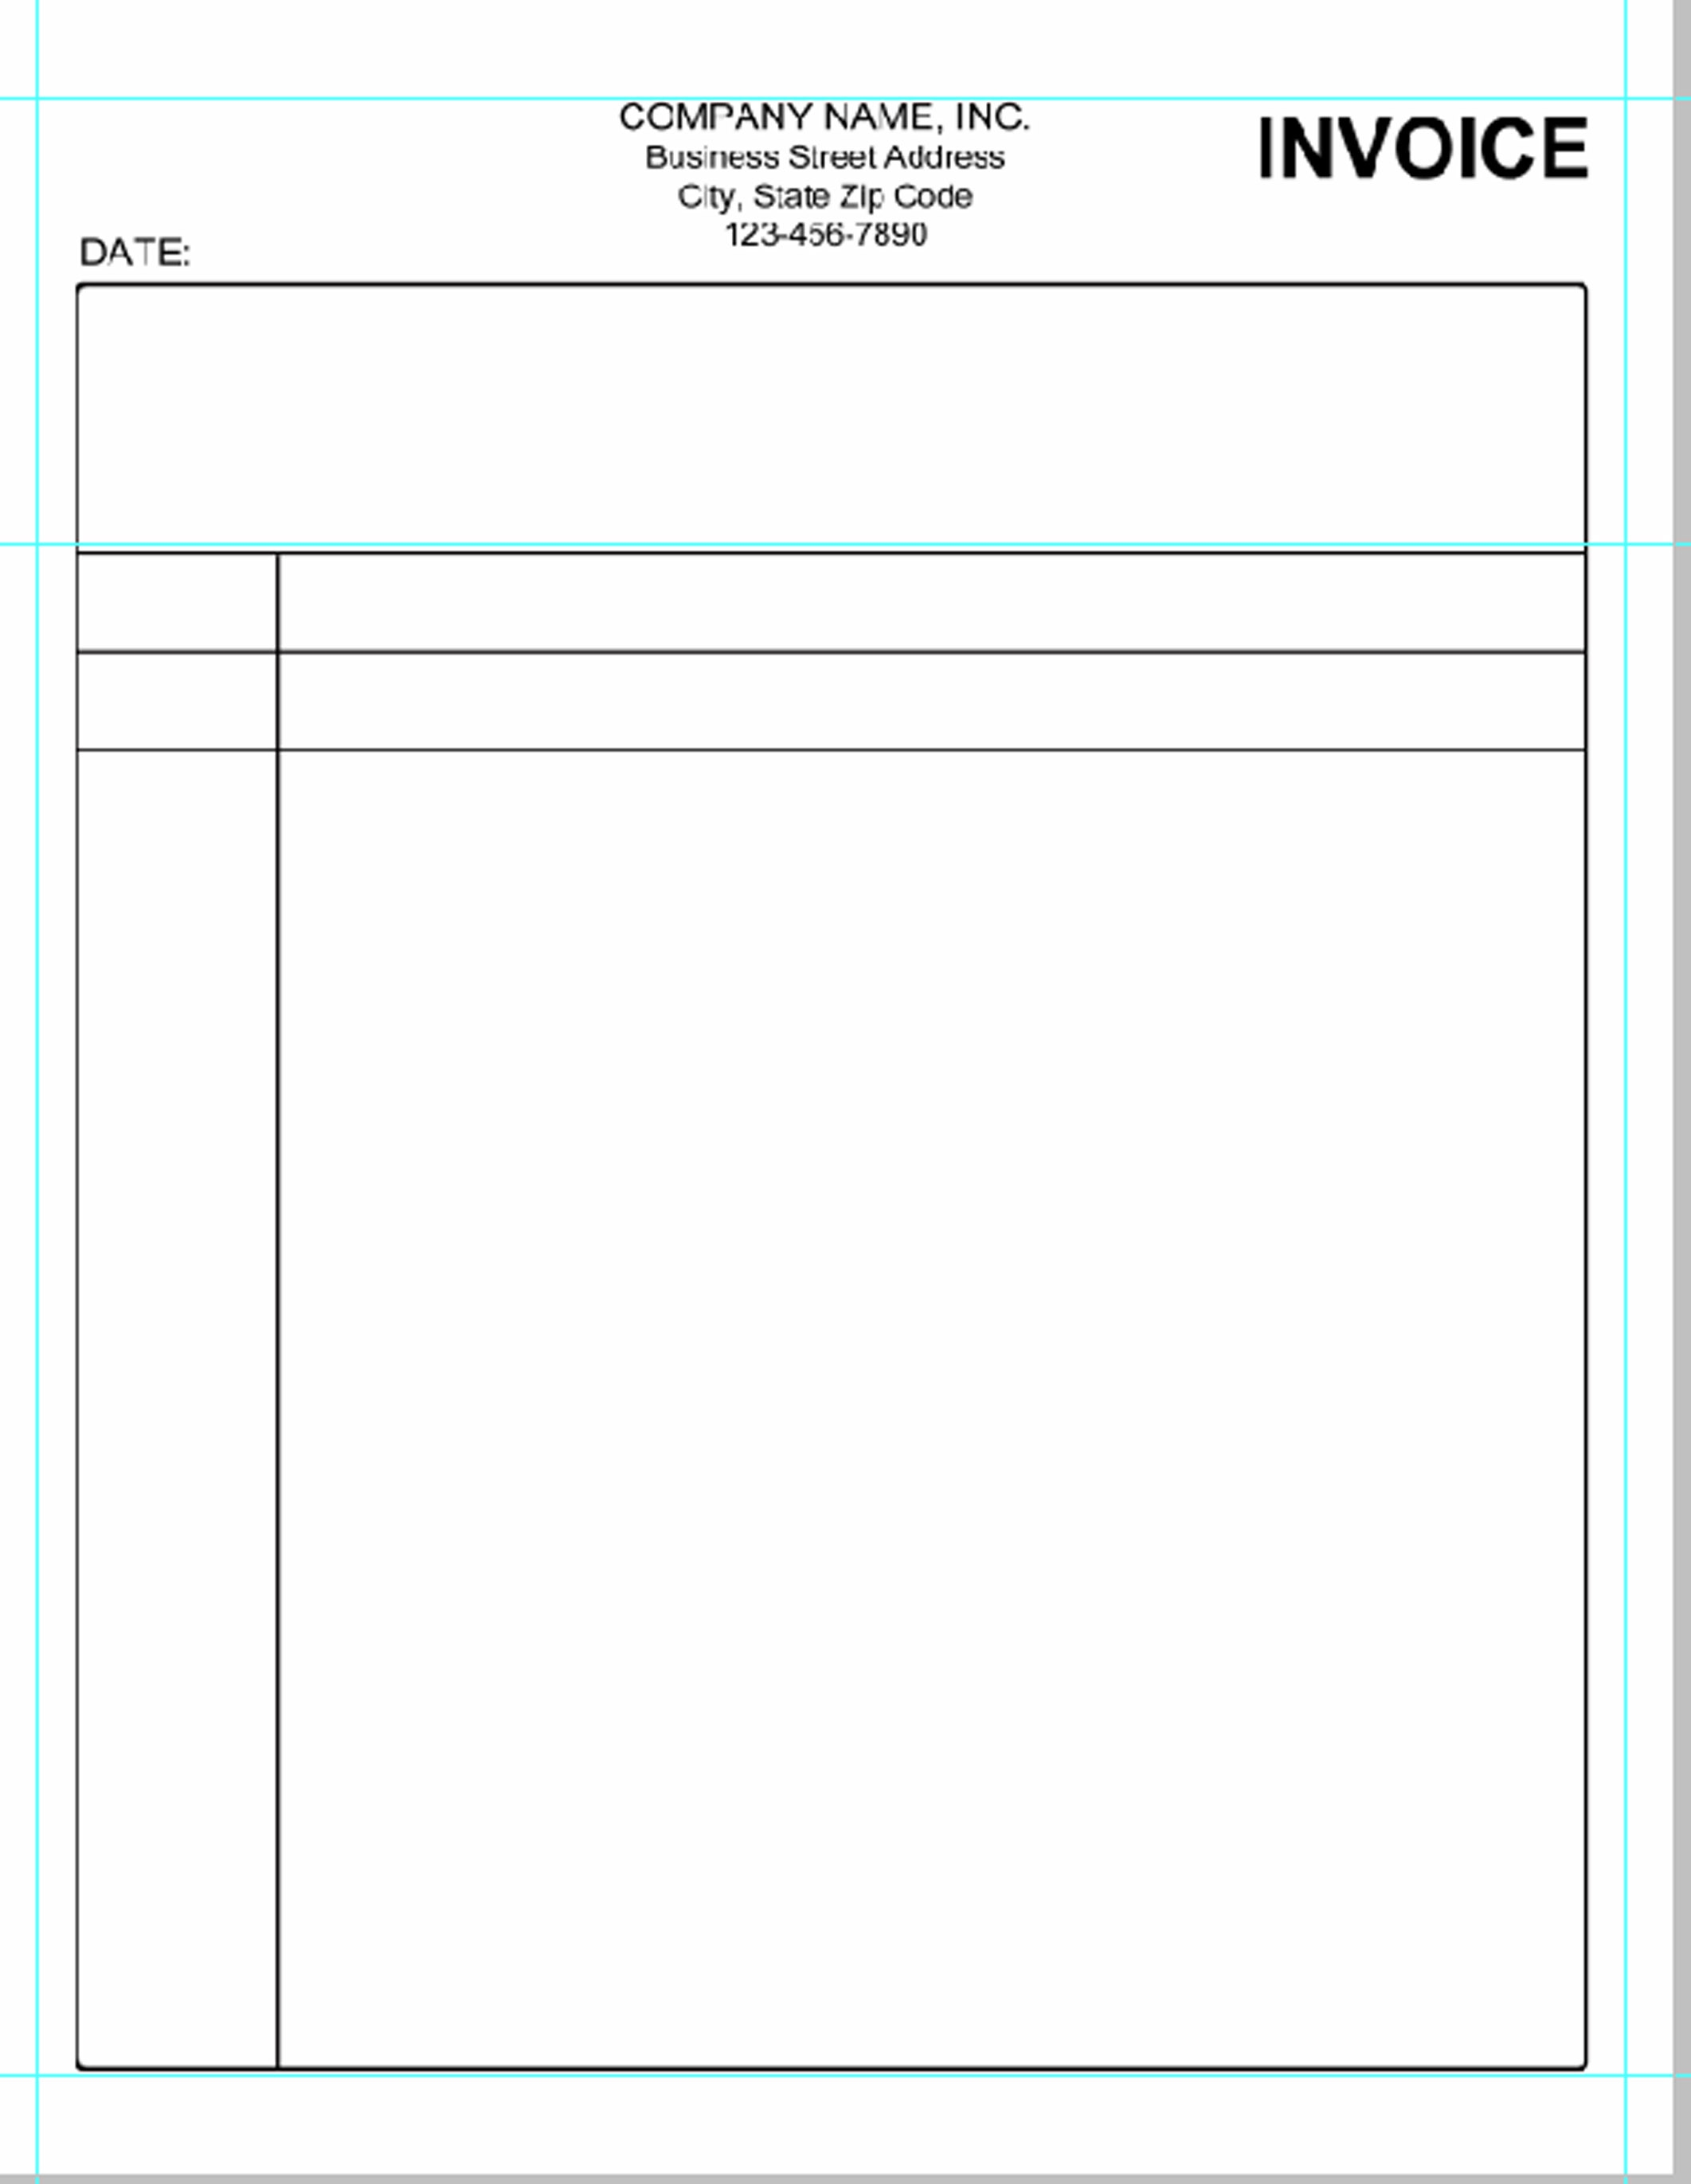 10 printable blank invoice samples and the benefits of invoice for printable blank invoice